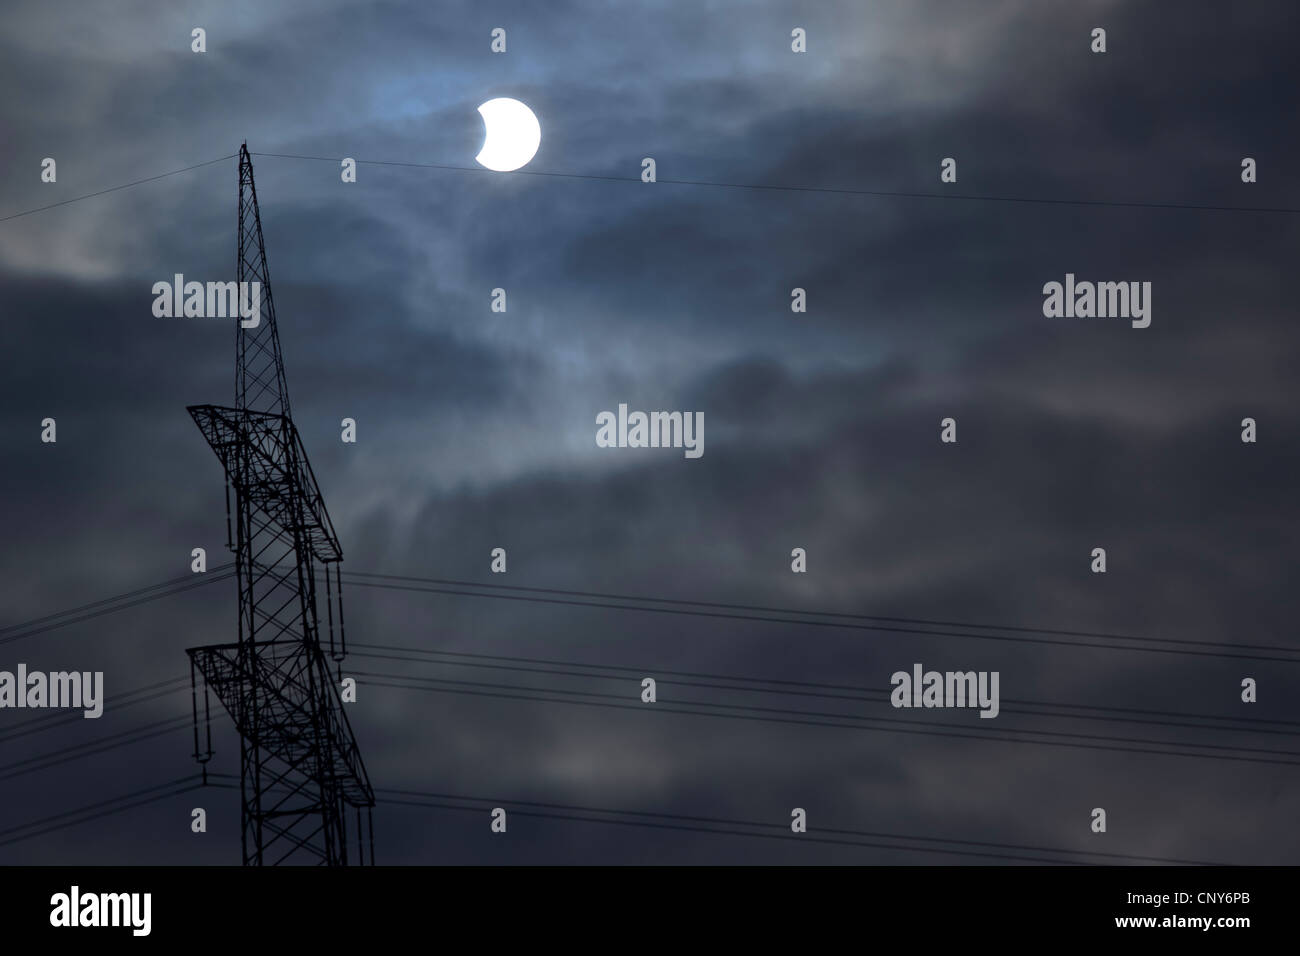 partial eclipse of the moon in a cloudy sky - Stock Image